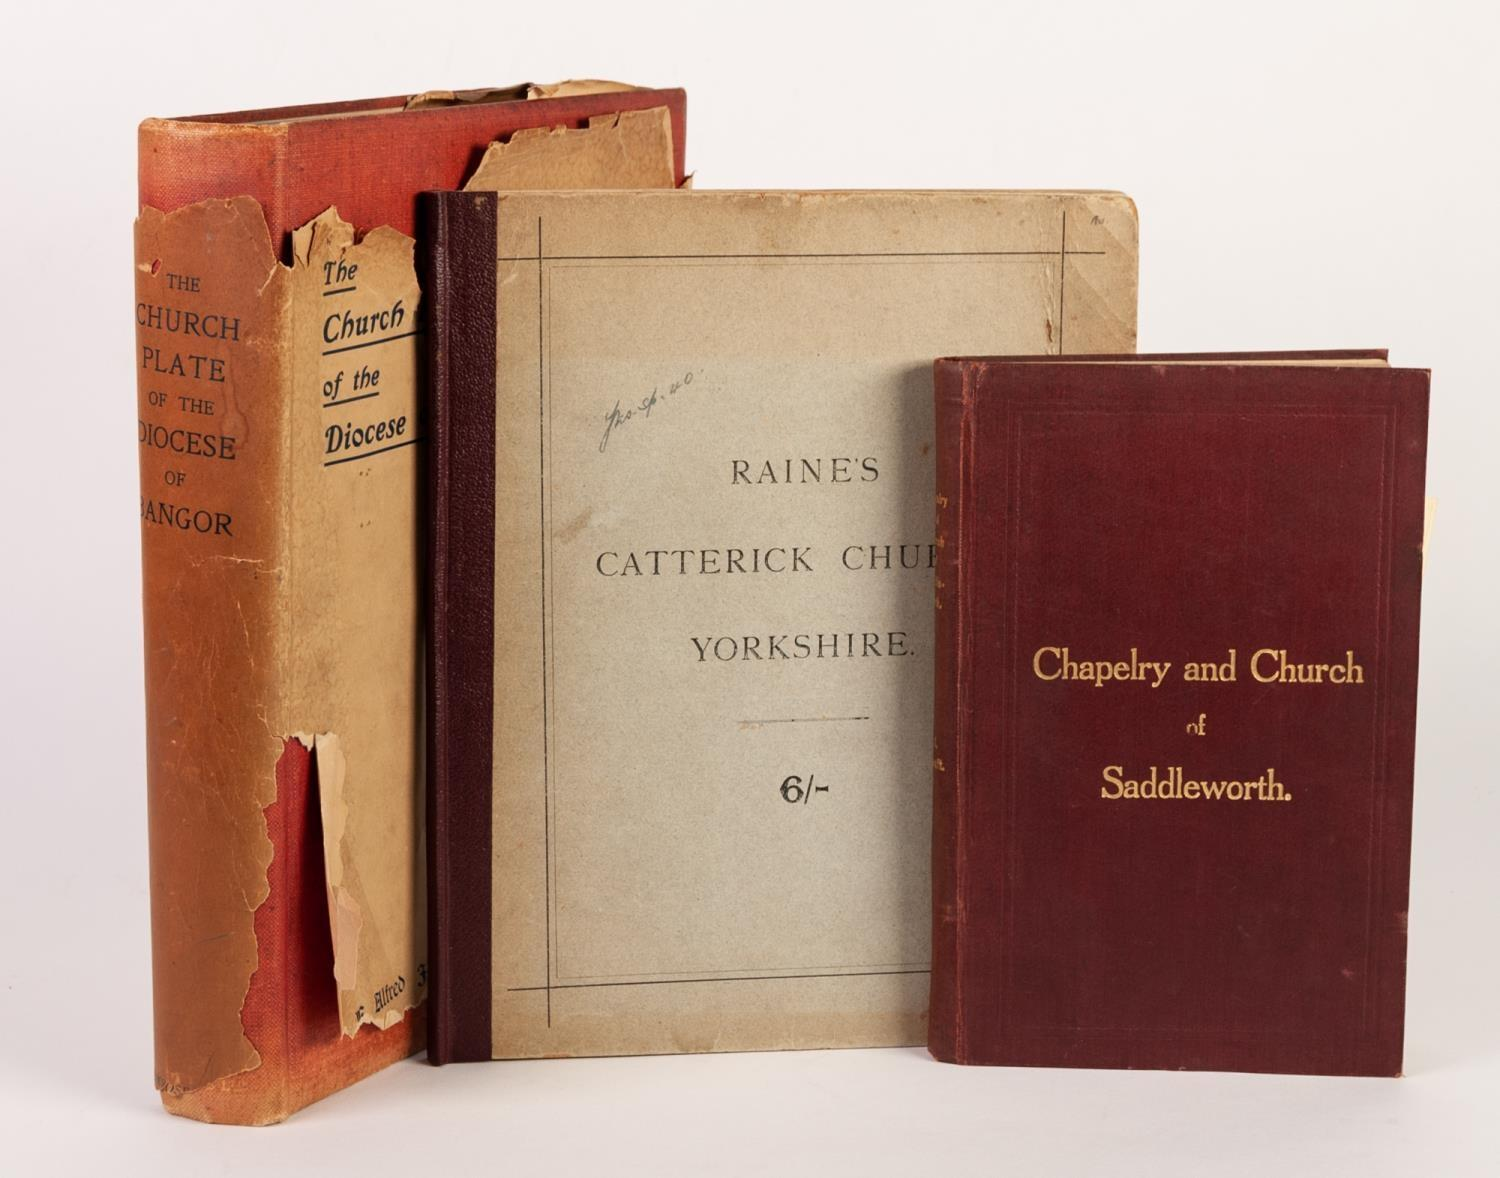 Lot 155 - Salvin-Catterick Church in the County of York, pub J Weale 1884, illustrated, bound in original